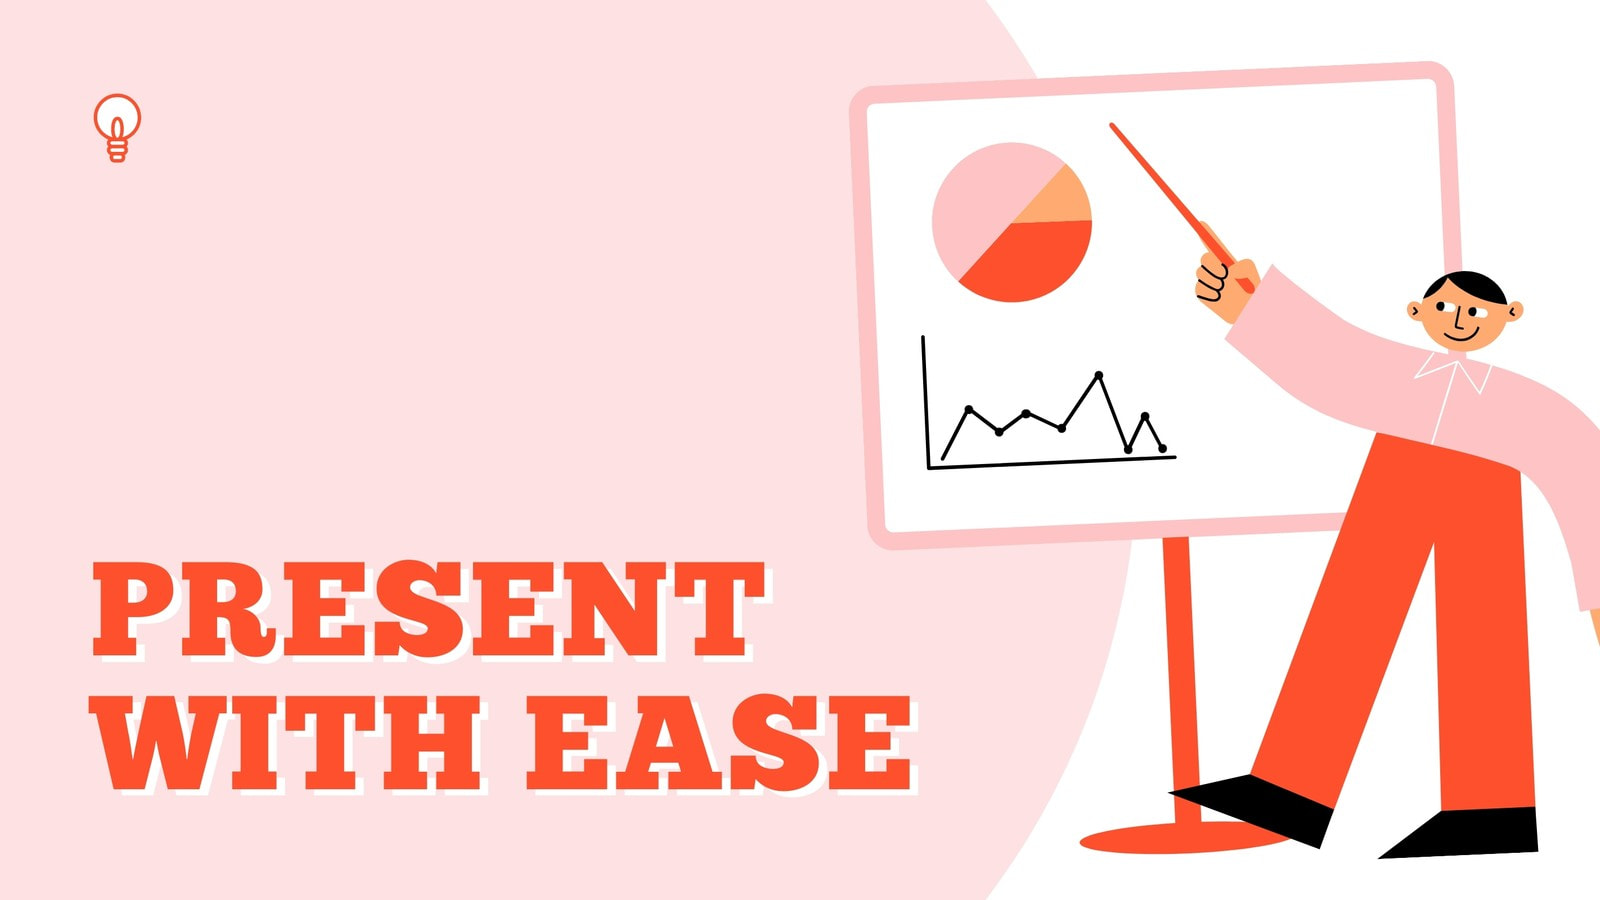 Light Pink and Orange Illustrative Fun Business Spot Illustrations Presenting with Ease Business Presentation